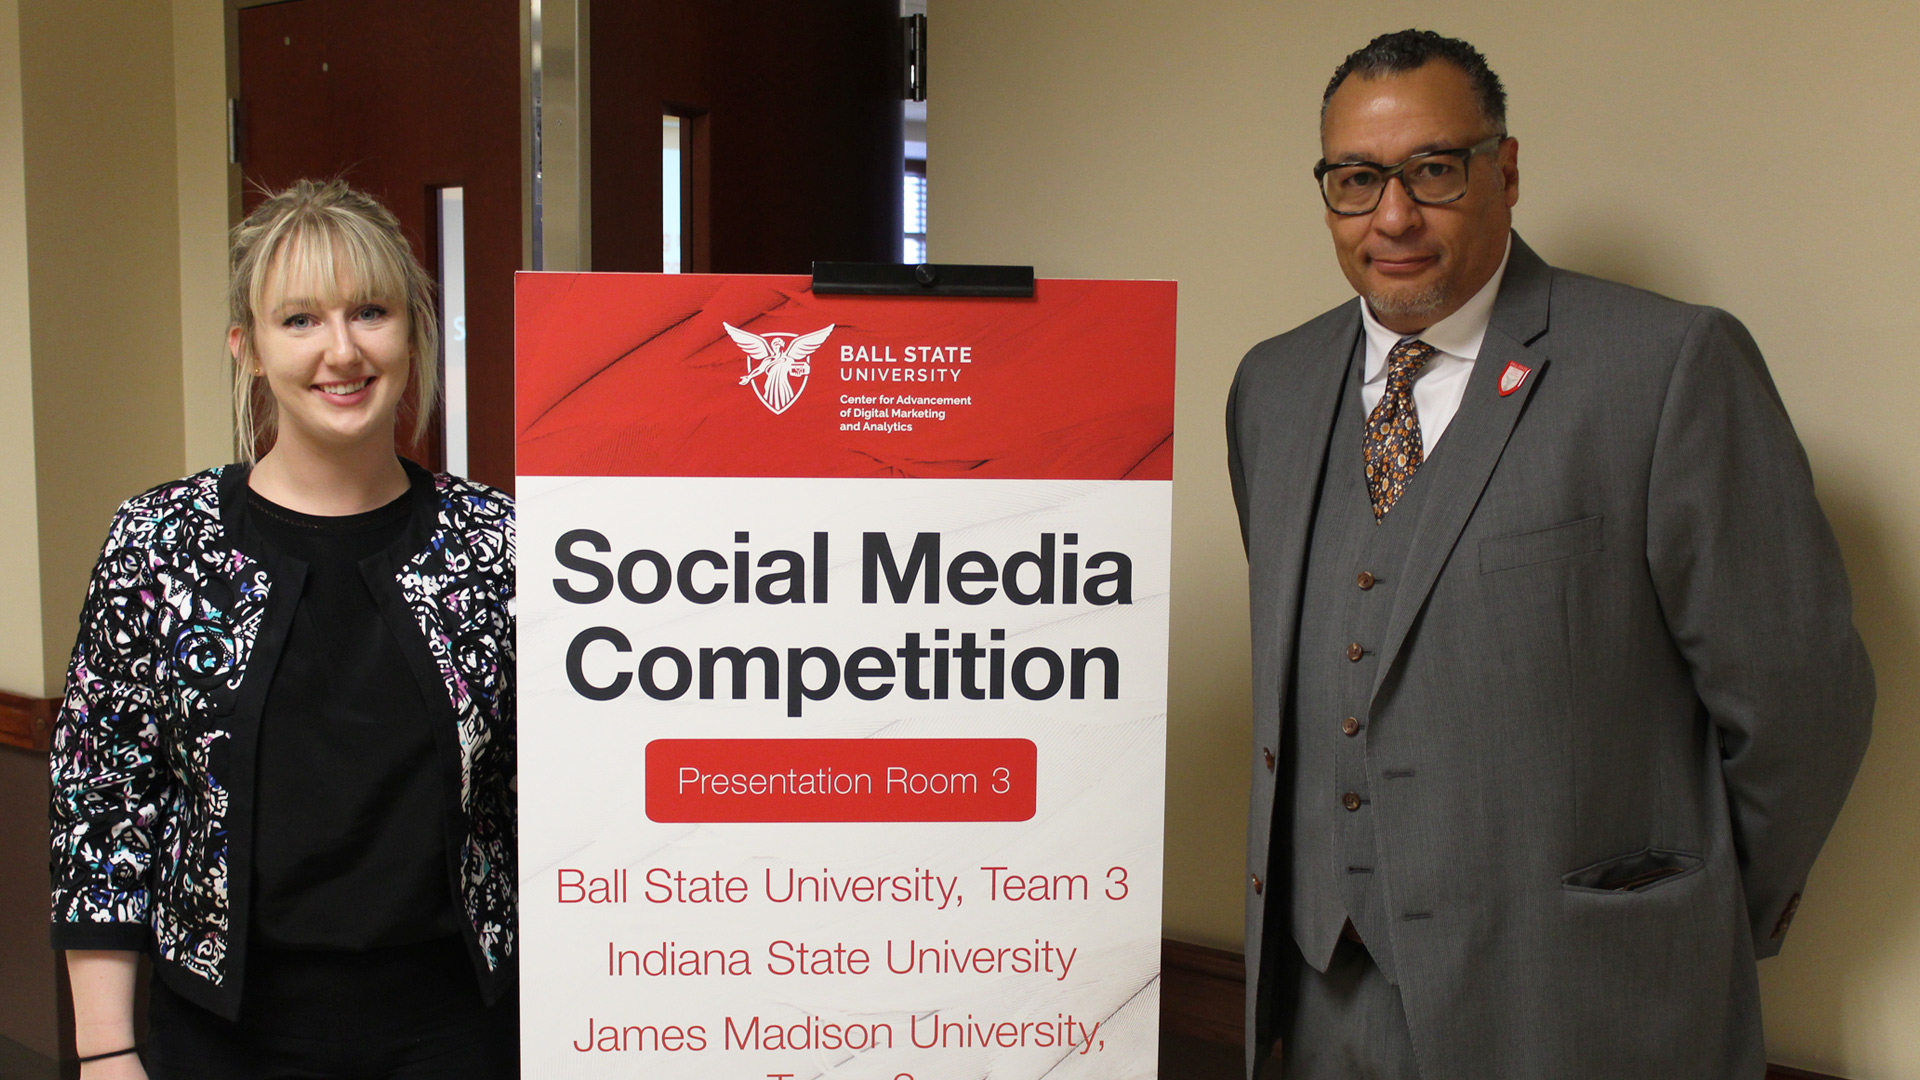 Kari Wissel (left) and Eric Harvey (right) facilitated this year's Social Media Competition at Ball State.